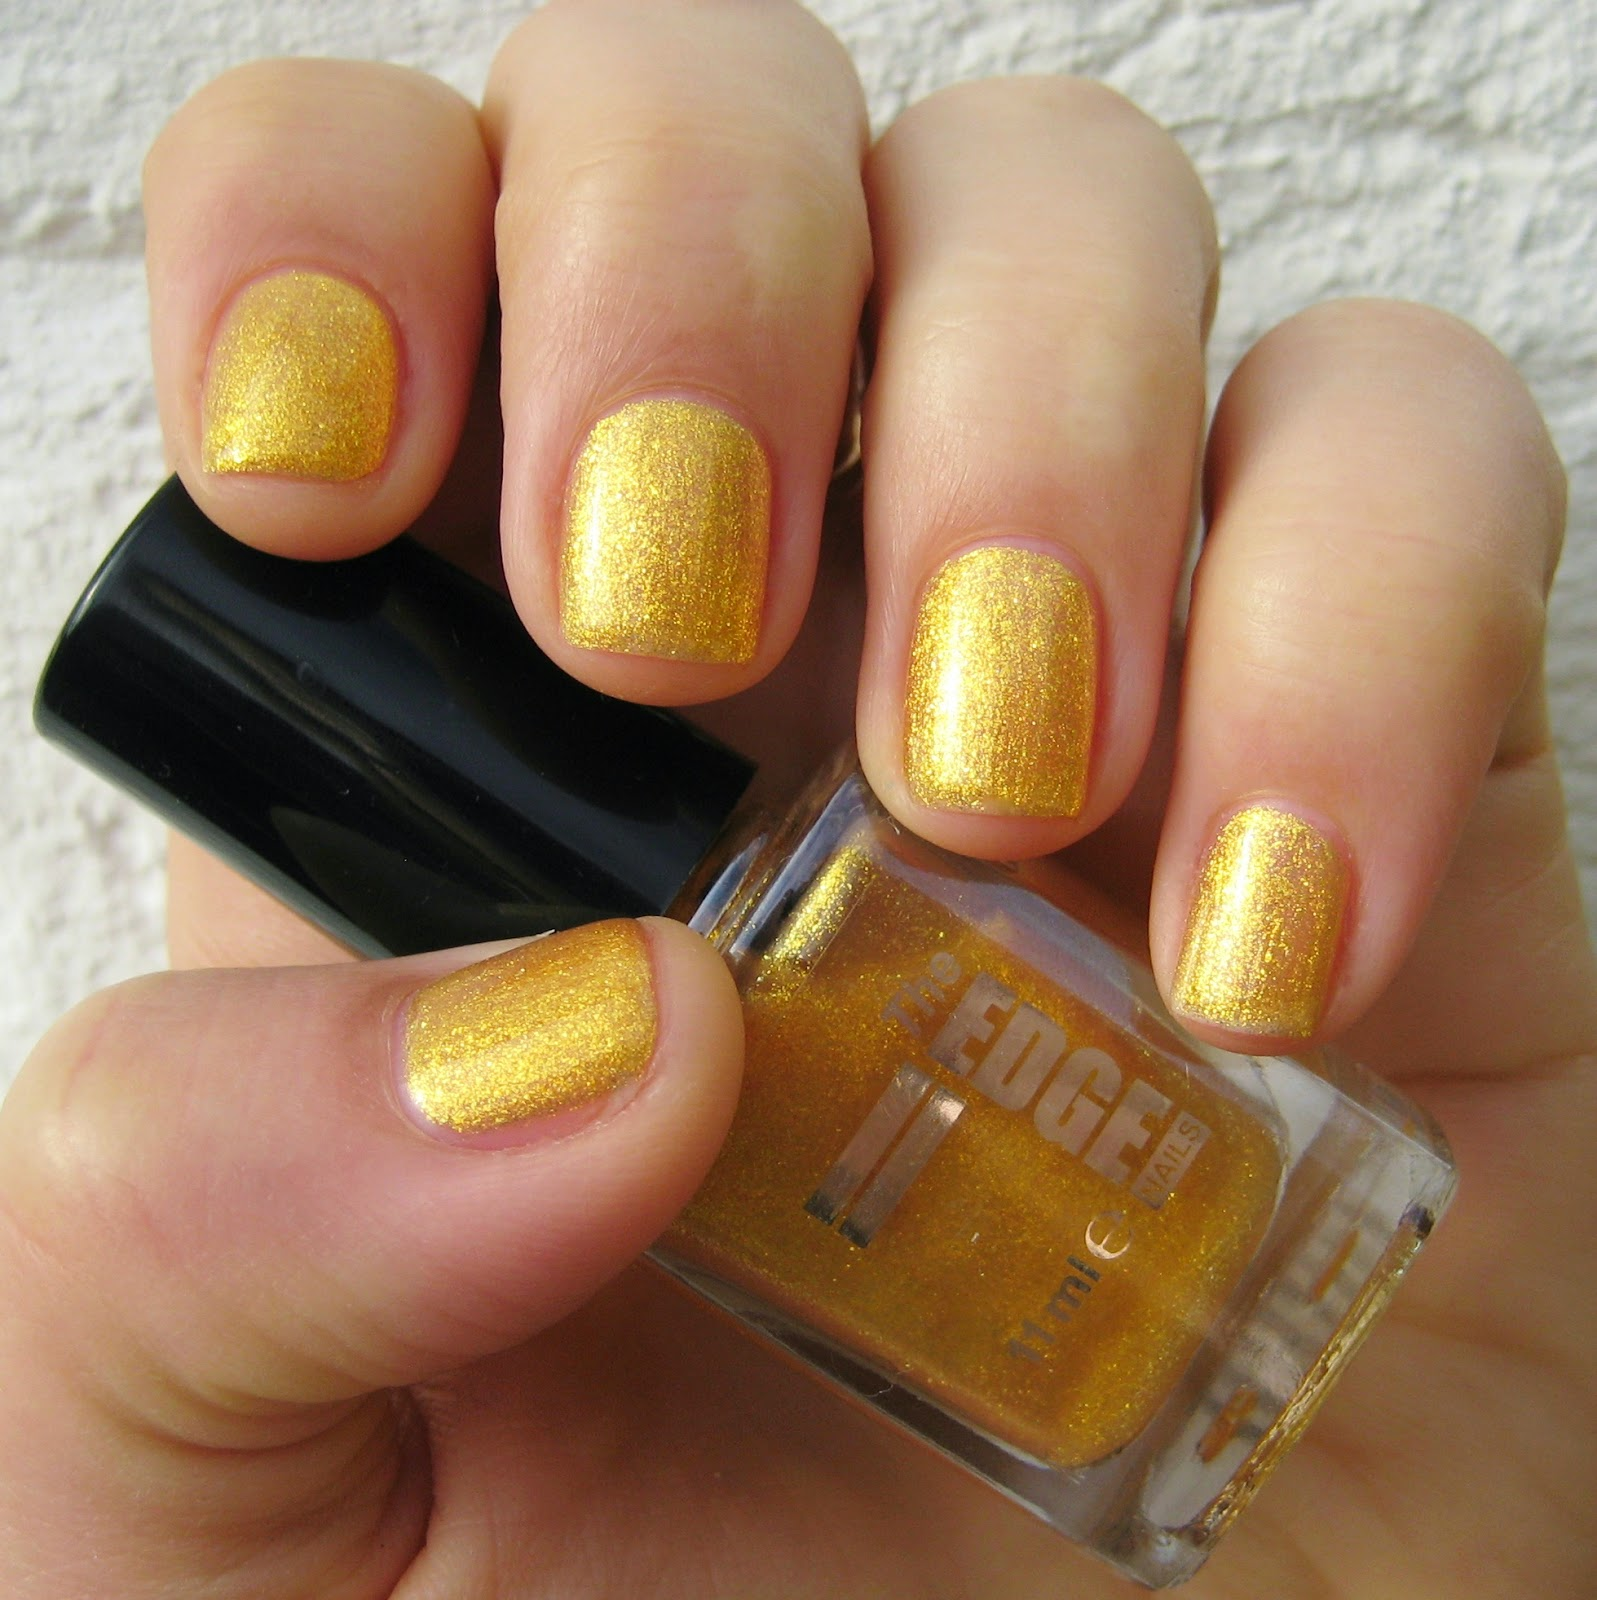 Egyptian Gold This Is My Second Favourite From The Bunch It S Such A Bright Fun Polish With Yellow Tone Glitter Pieces Aren T That Dense So